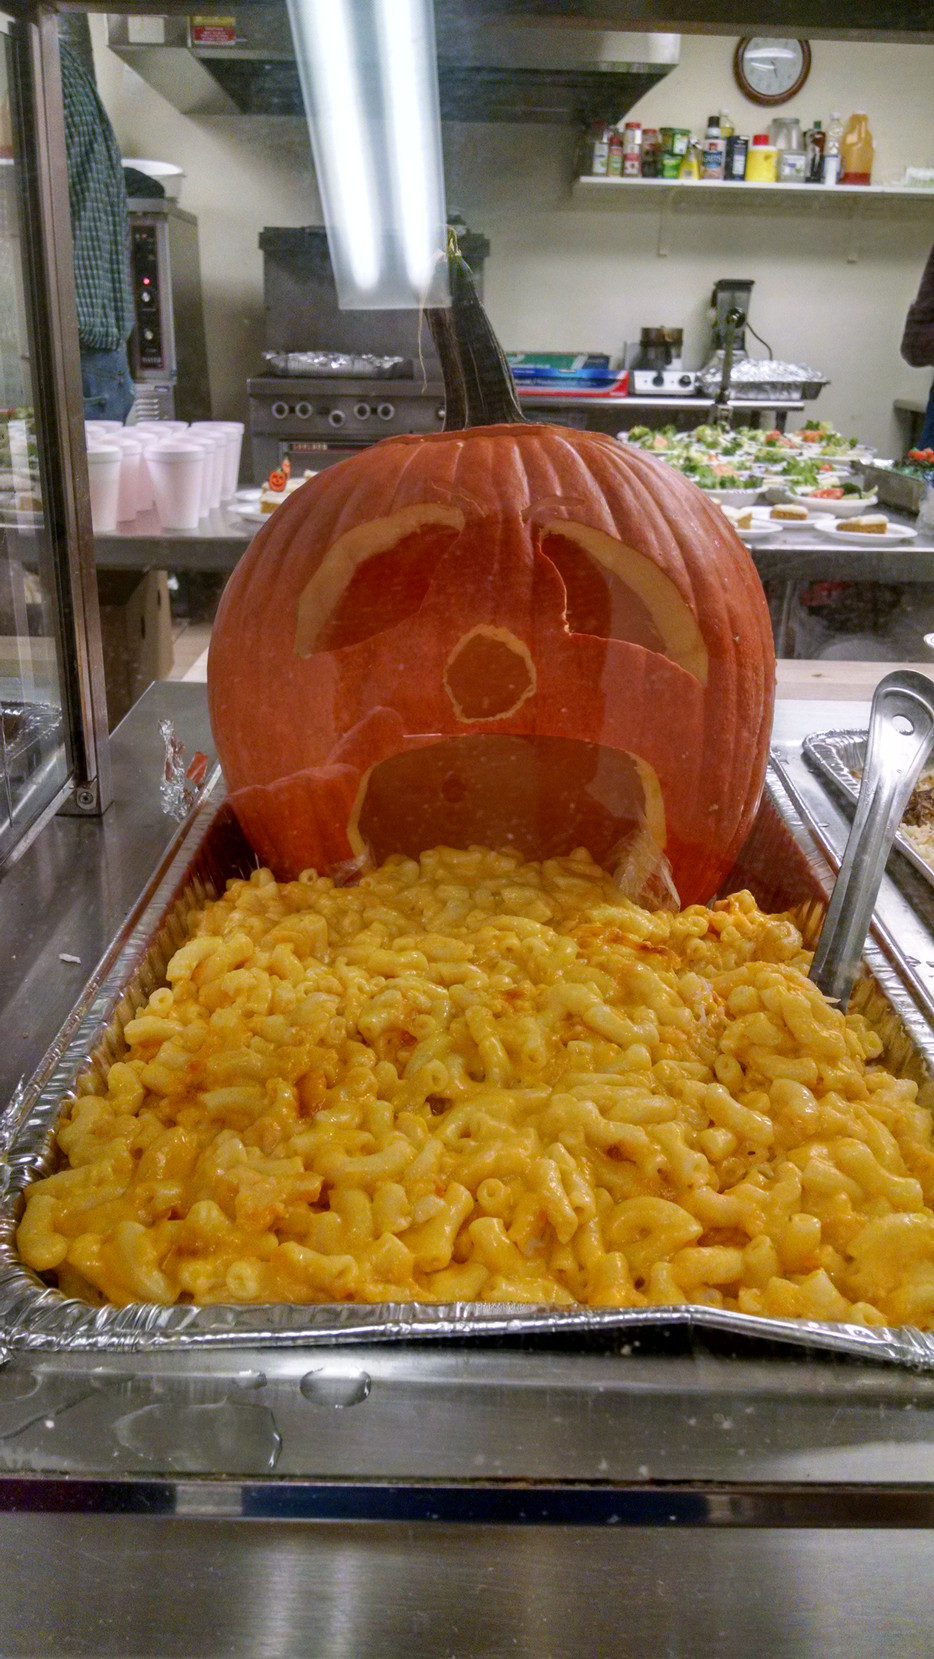 Spooky Halloween Meal For Homeless!